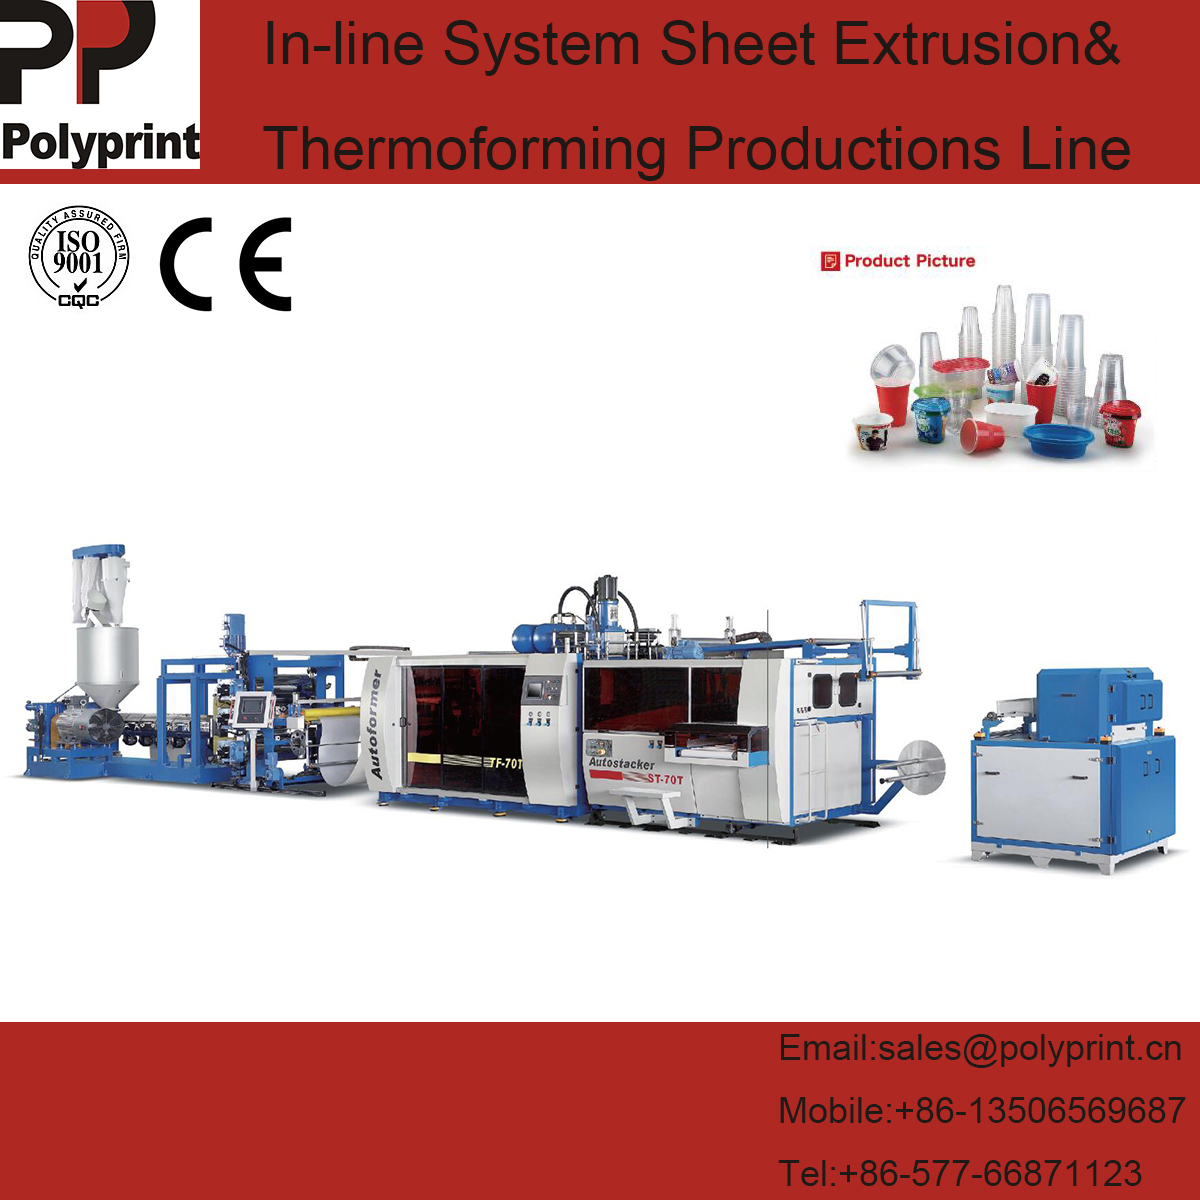 Full-Automatic Plastic PP/PS Sheet Extrusion and Tilt Cup Thermoforming Machine Production Line for Water Cups/Drinking Cups/Milk Cups/Bowls